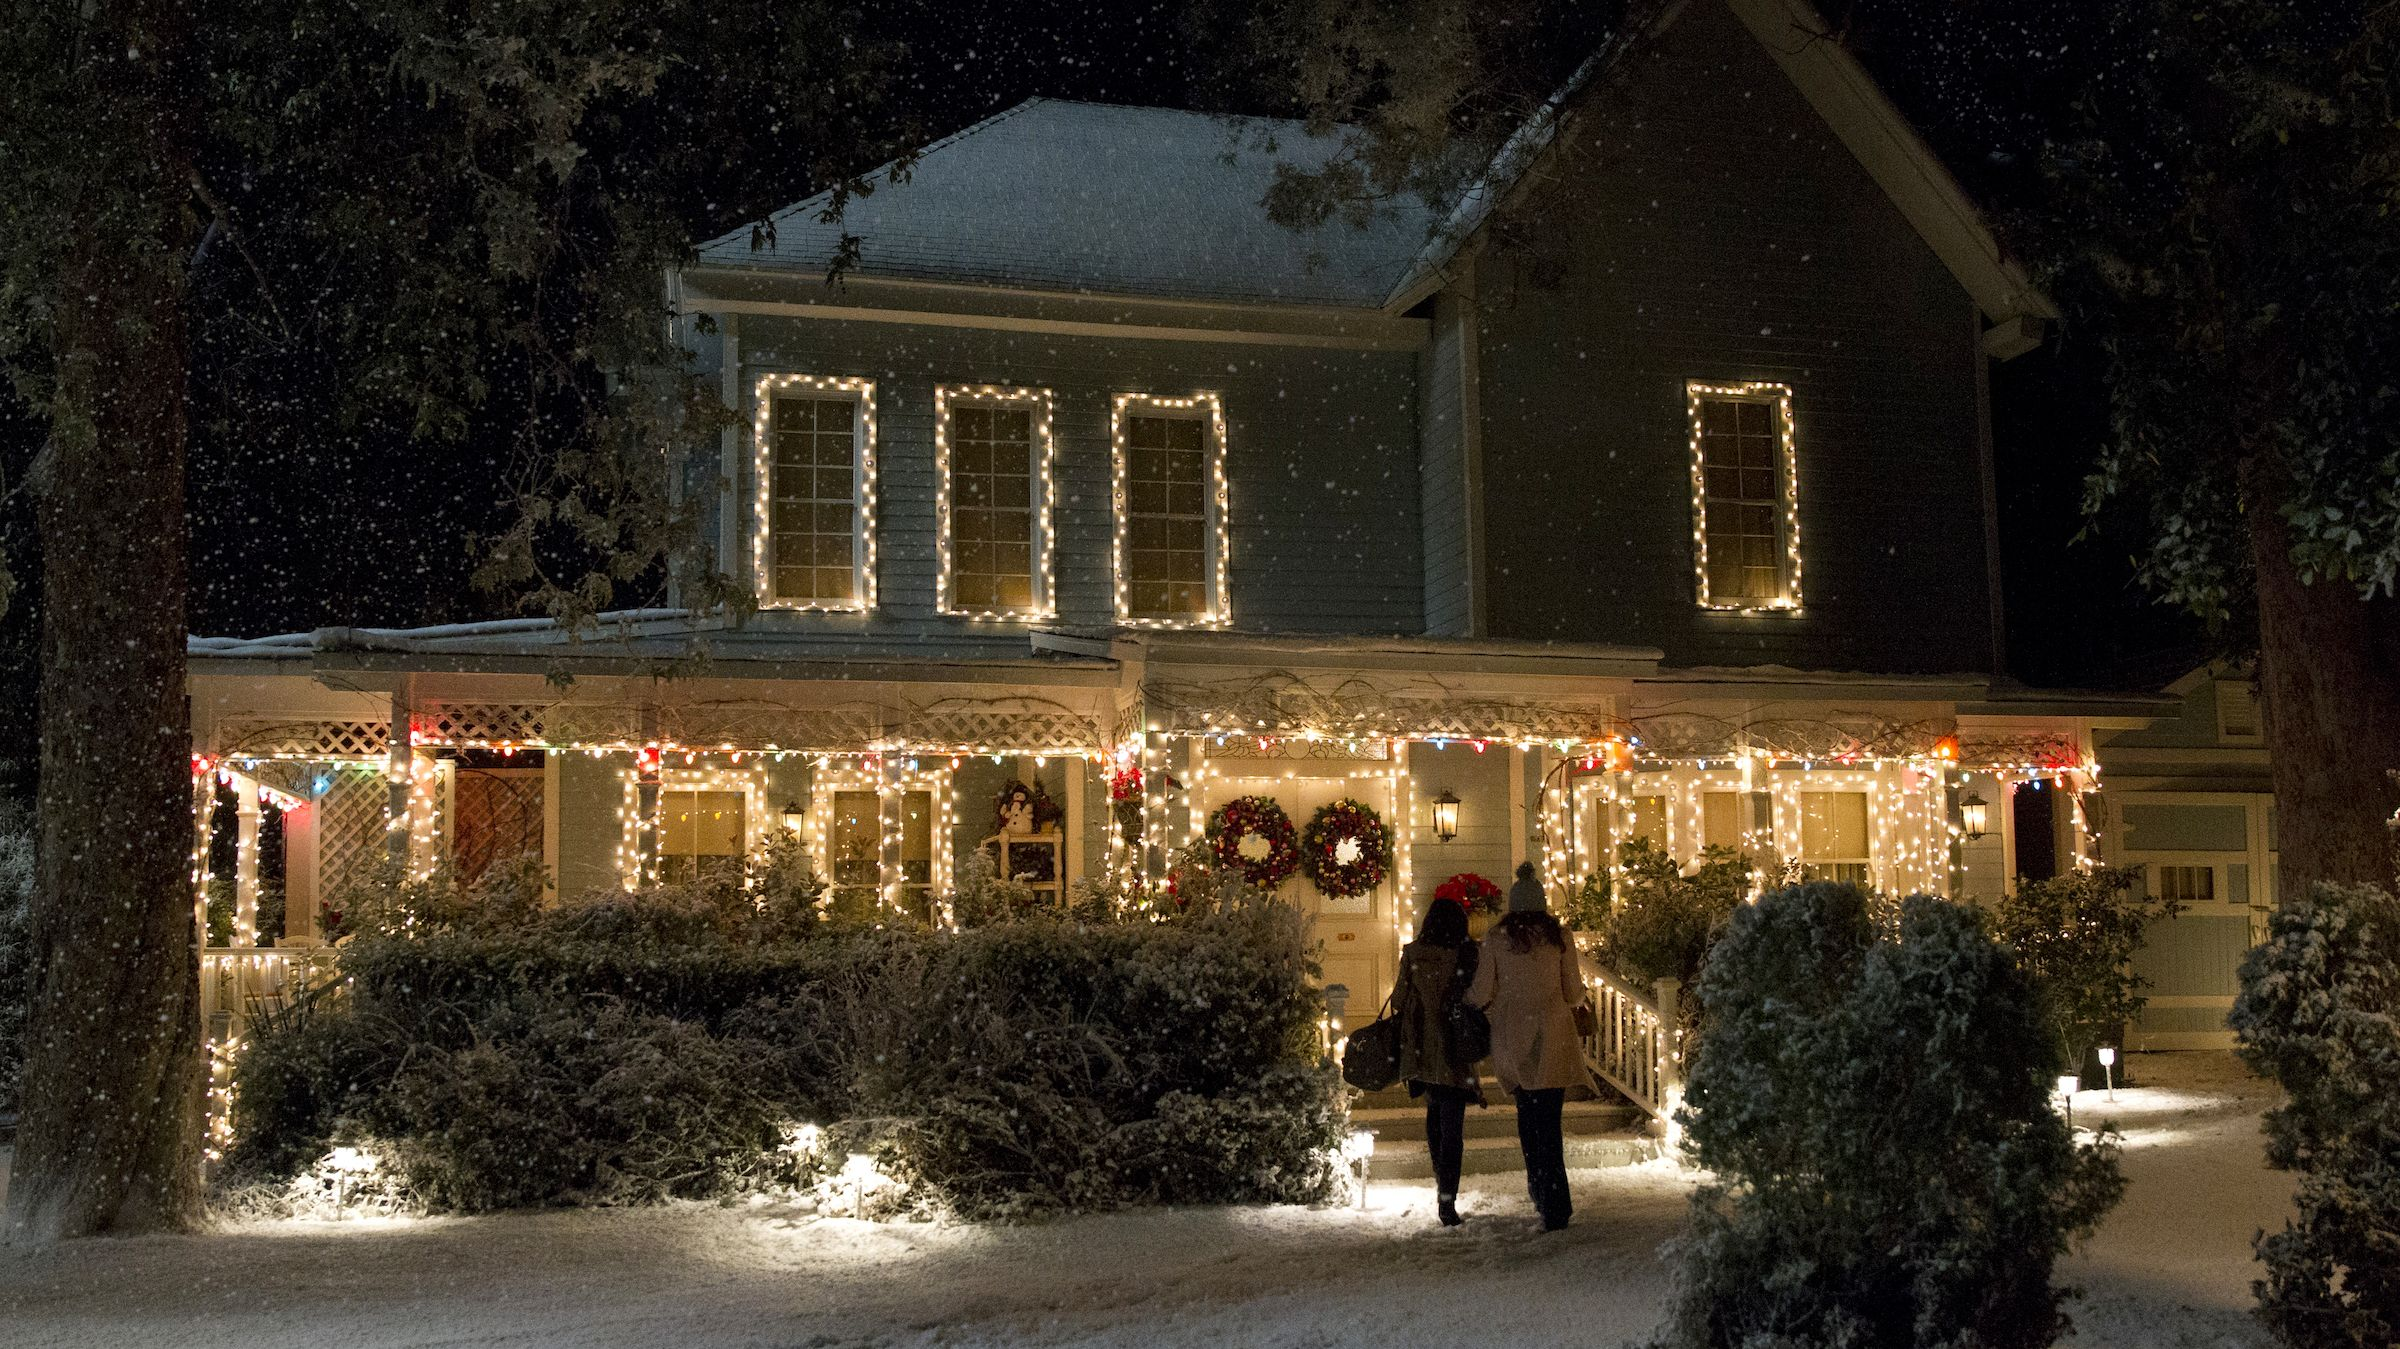 Gilmore Girls Fans Can Have Lunch at Lorelai's House in Stars Hollow This Winter